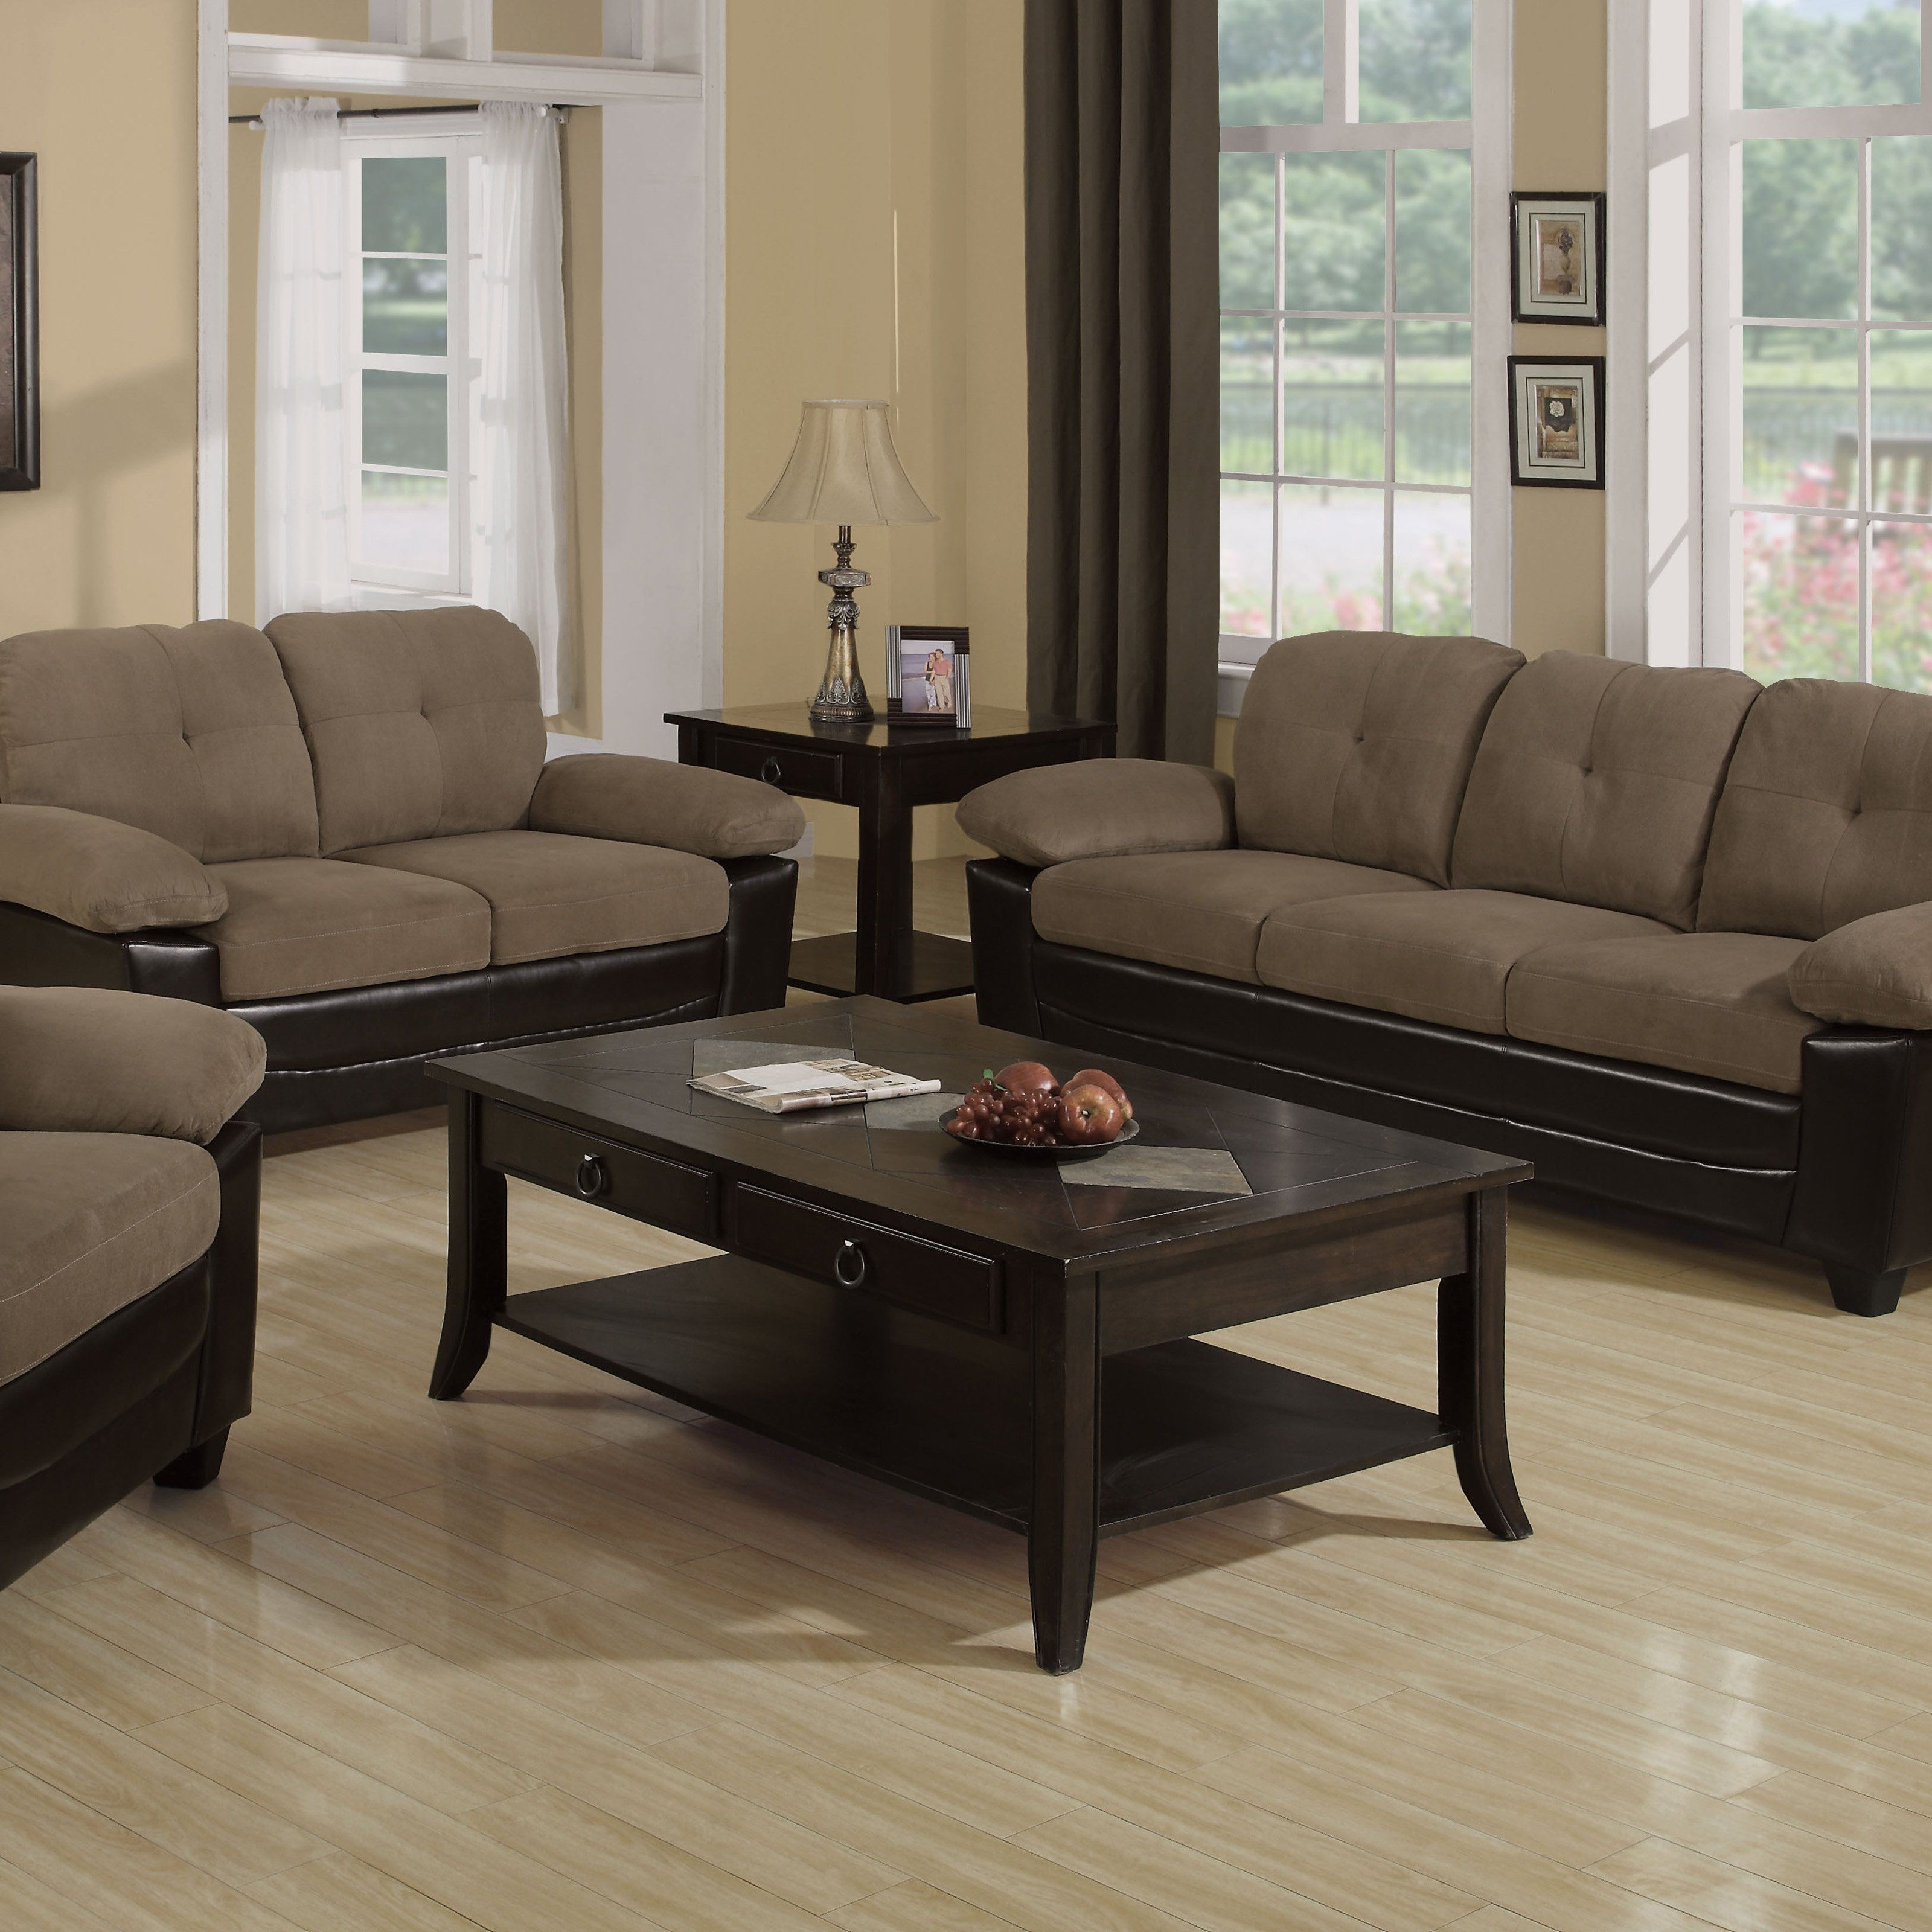 Kiara Sofa Chairs With Regard To Most Recently Released Have To Have It. Kiara Microfiber Sofa With Loveseat And Chair (Gallery 5 of 20)